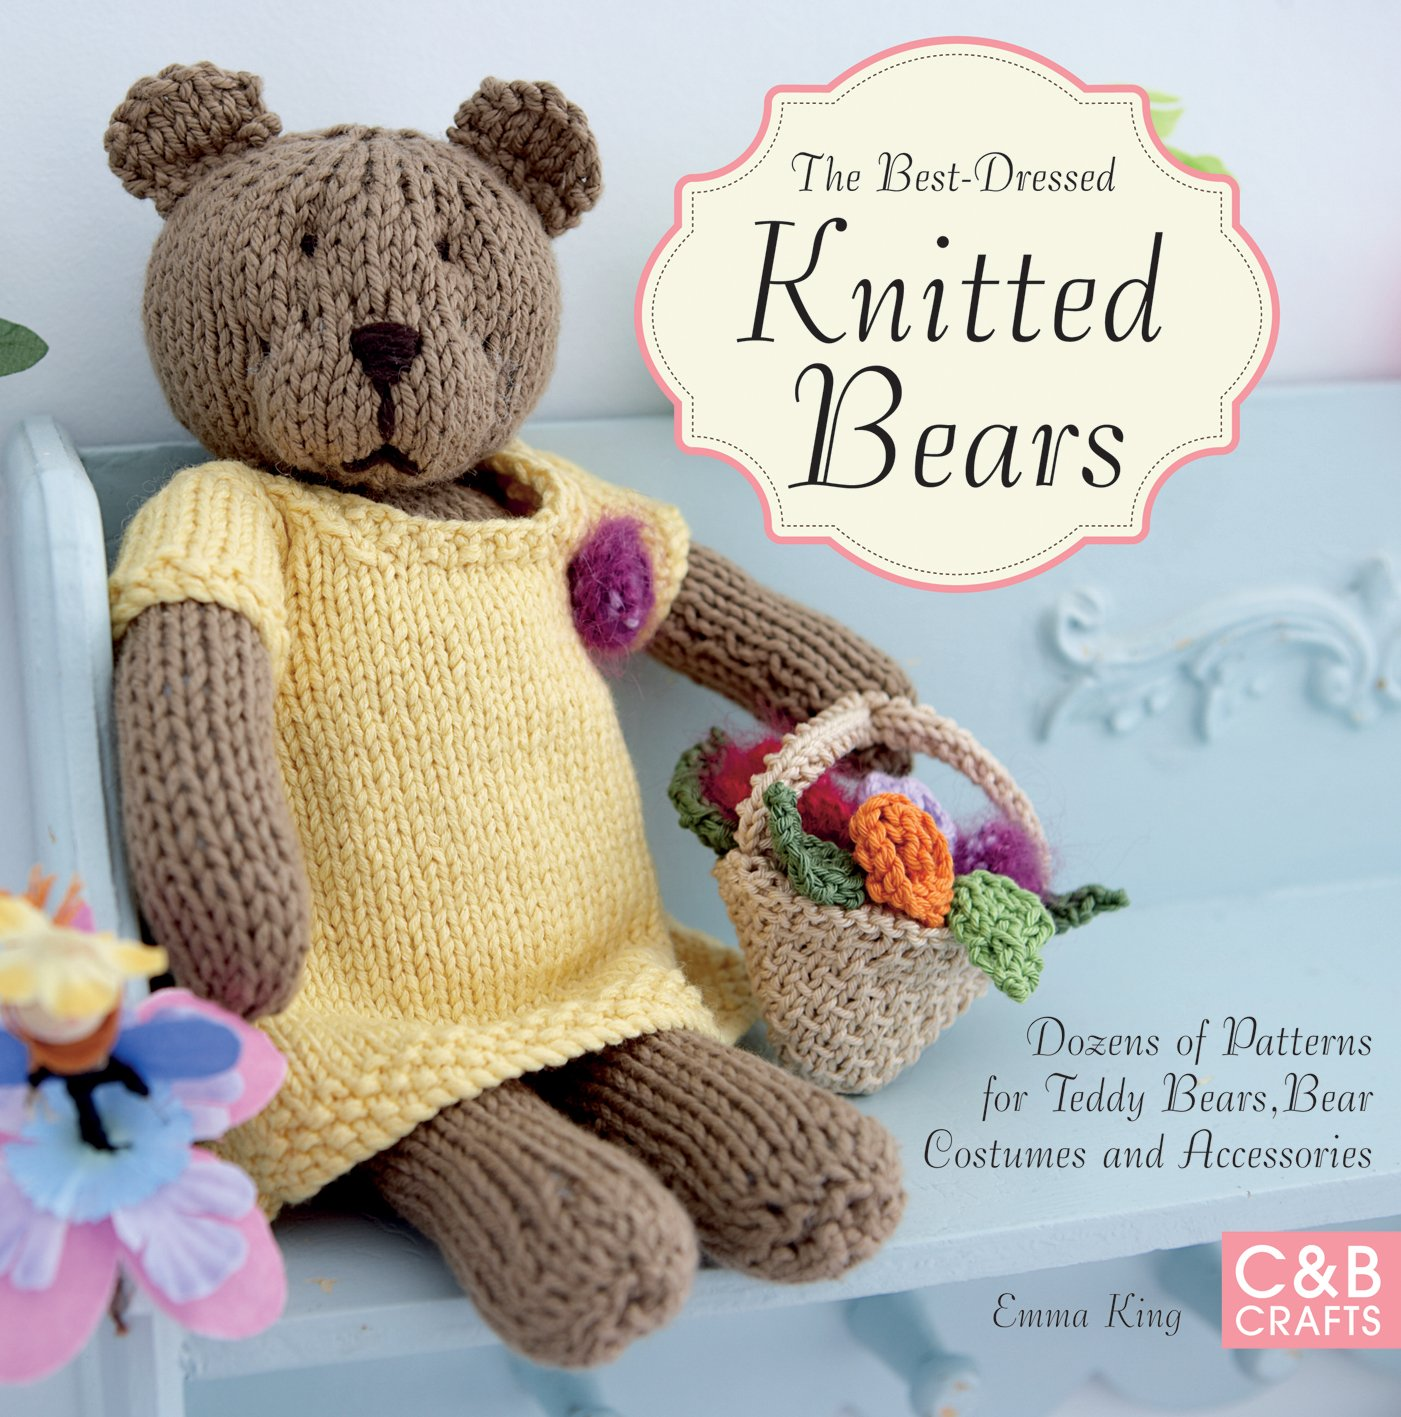 The best dressed knitted bears dozens of patterns for teddy bears the best dressed knitted bears dozens of patterns for teddy bears bear costumes and accessories amazon emma king 8601405289995 books bankloansurffo Gallery